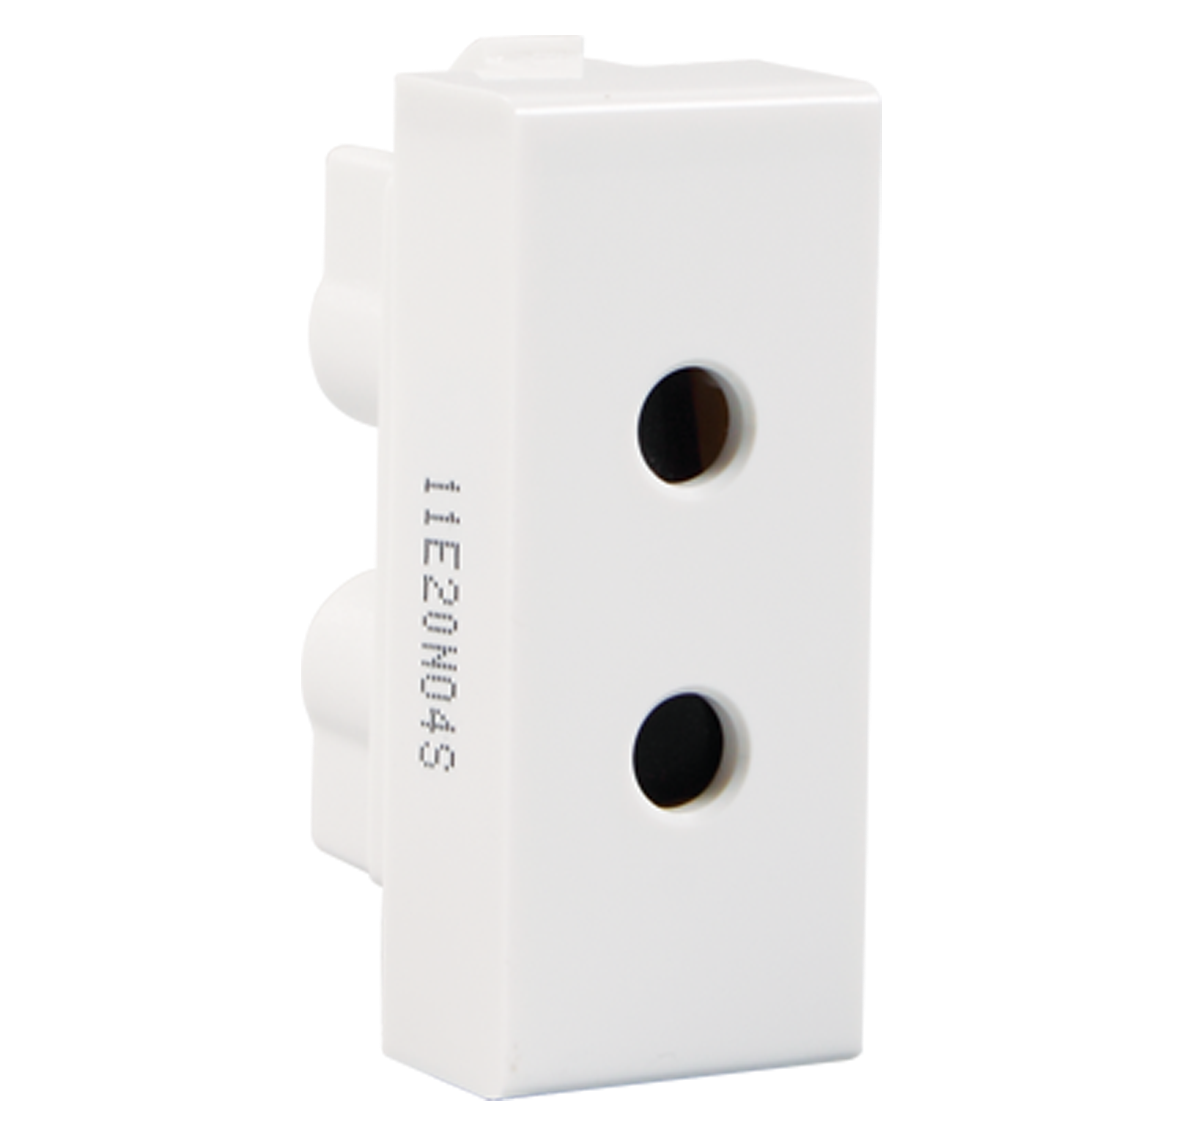 6a-2-pin-socket-1m